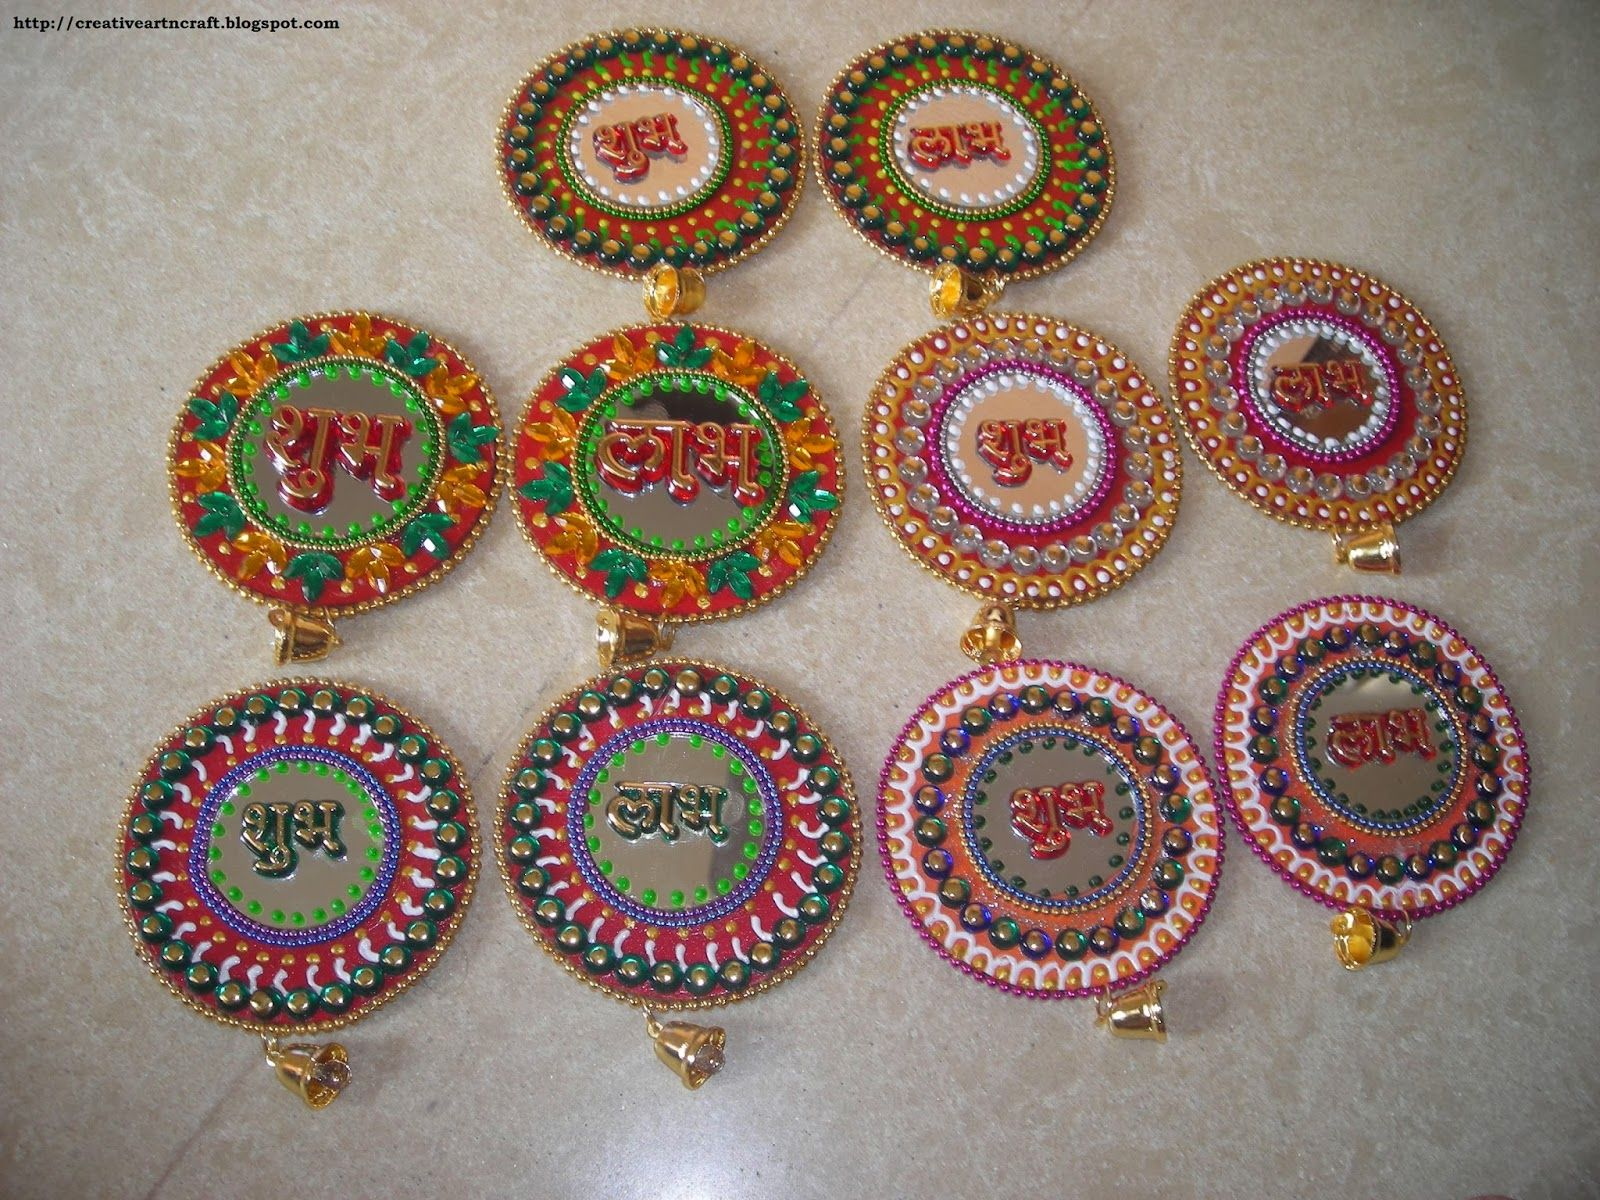 Diwali Decoration Ideas And Crafts Shubh 43labh 43 4 Jpg 1 6001 200 Pixels Projects To Try